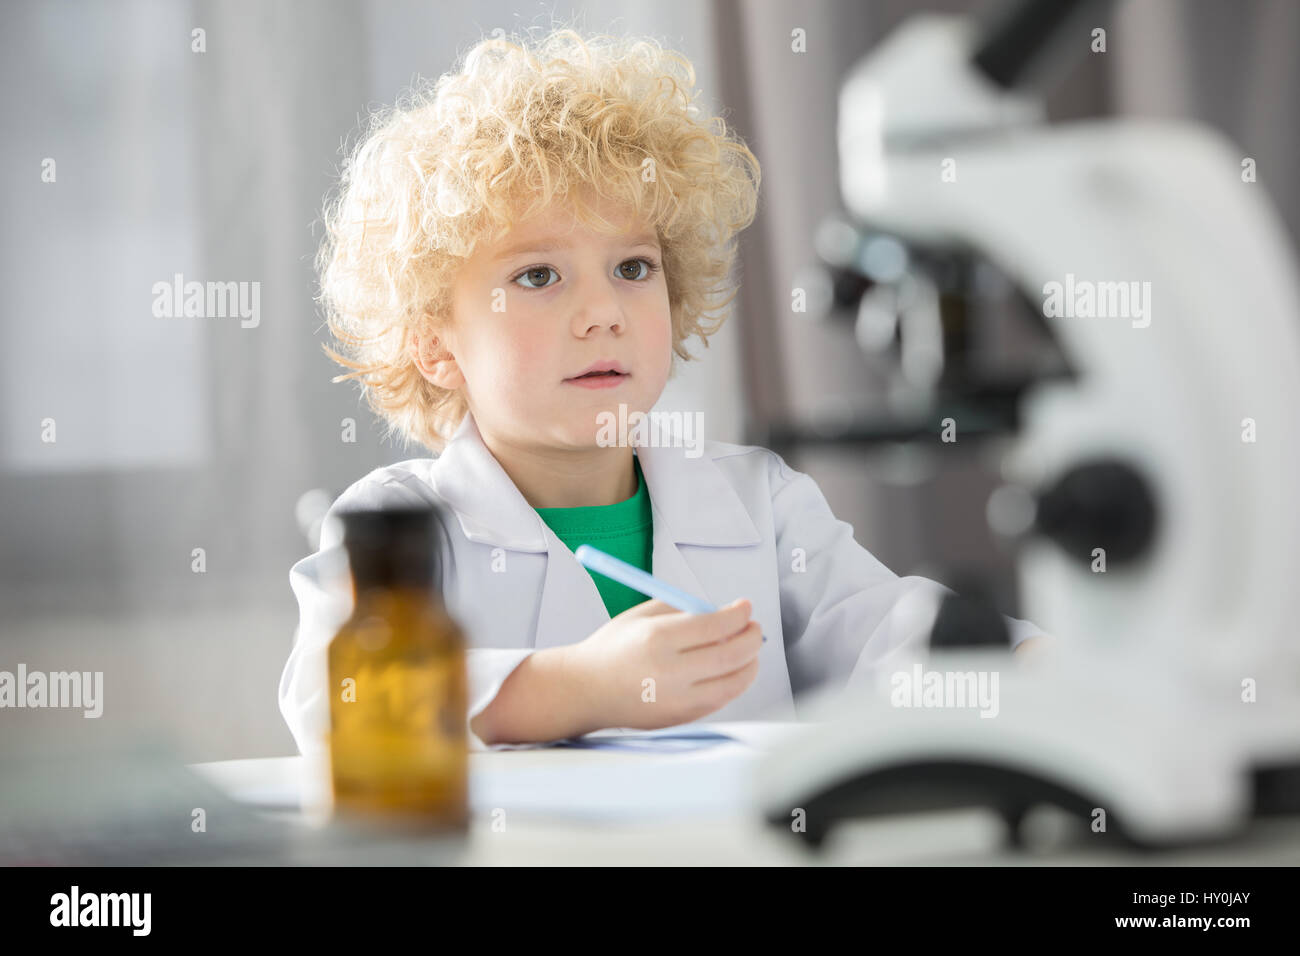 Schoolboy in white lab coat taking notes during scientific ...